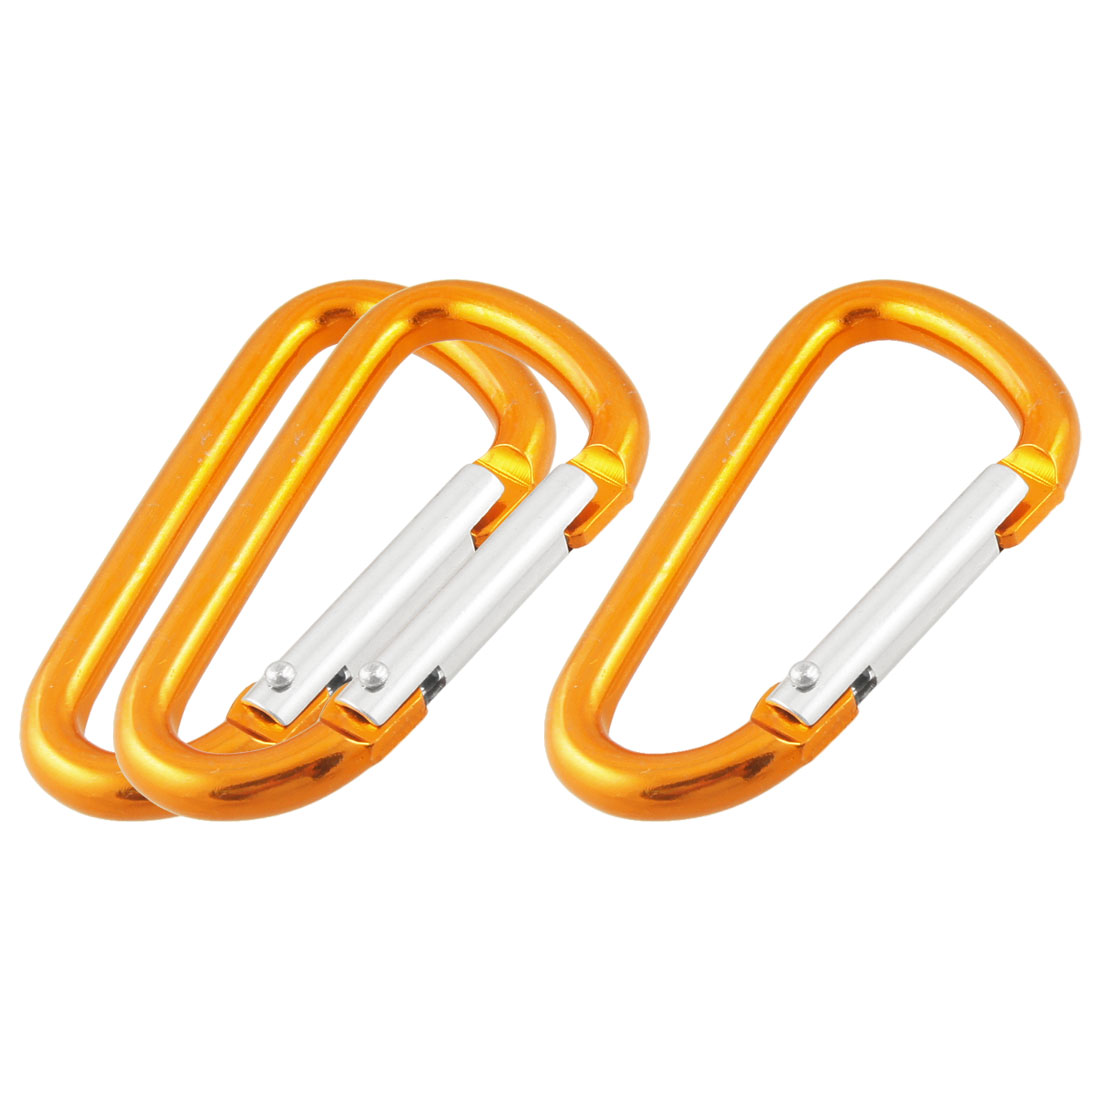 3 Pcs Yellow Spring Loaded Gate D-like Aluminum Alloy Carabiners Hooks